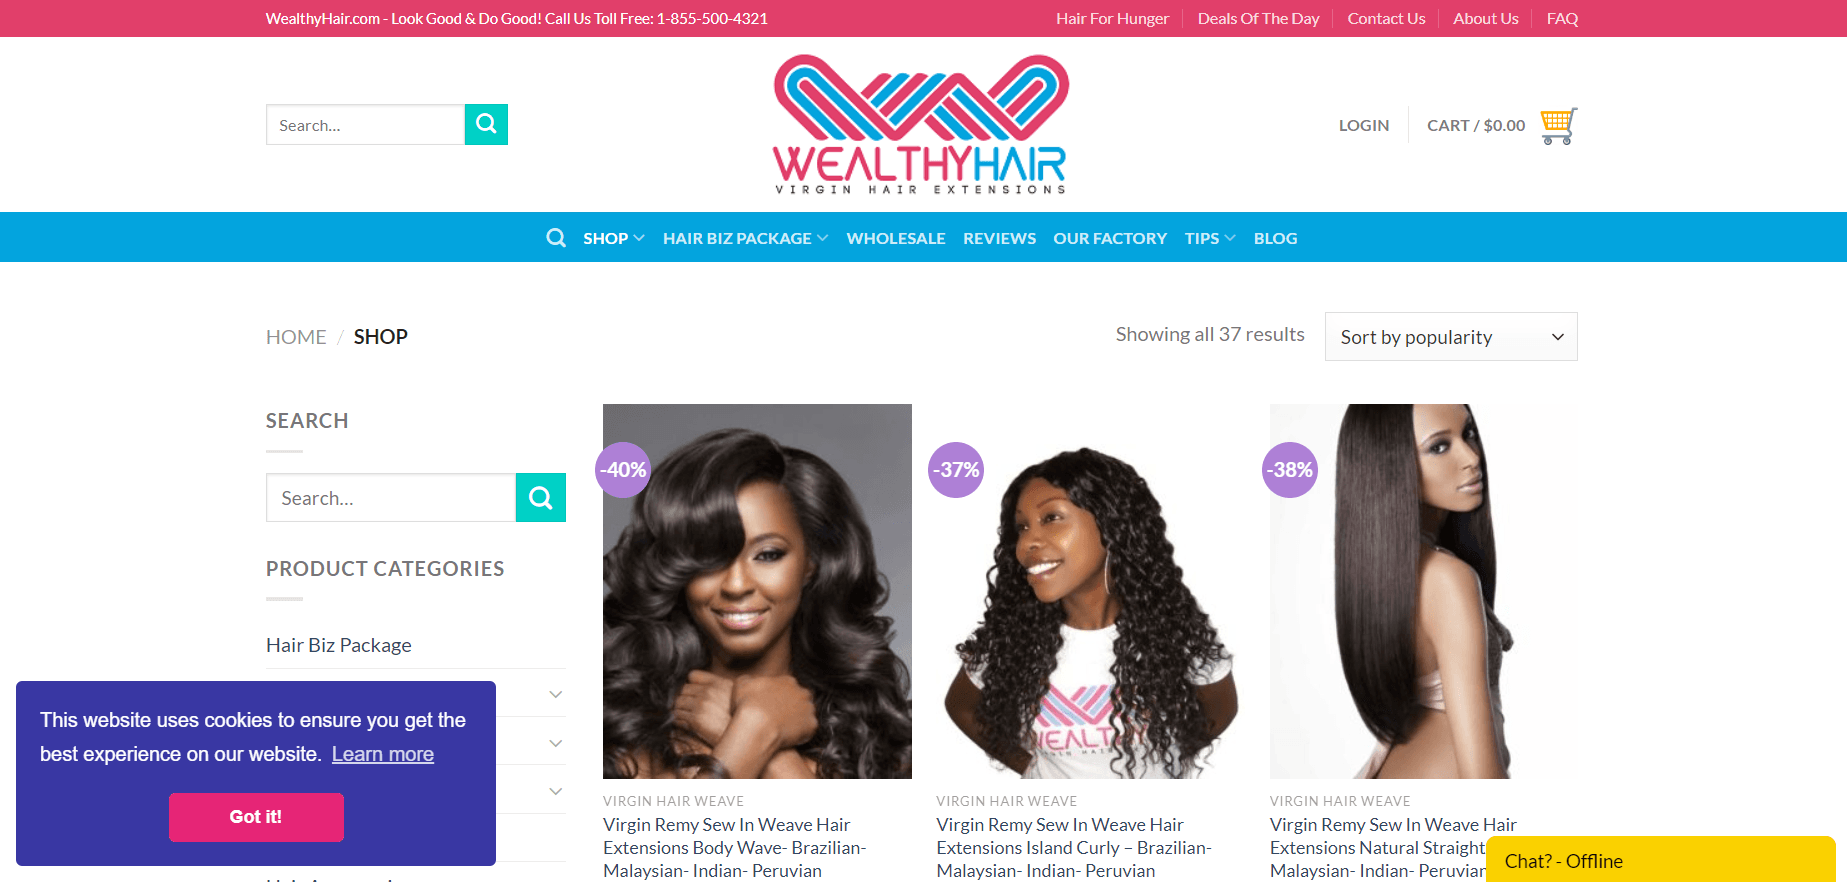 This screenshot from Wealthy Hair shows three different textures of hair extensions: a light wave, kinky-curly, and straight, all in the color black.